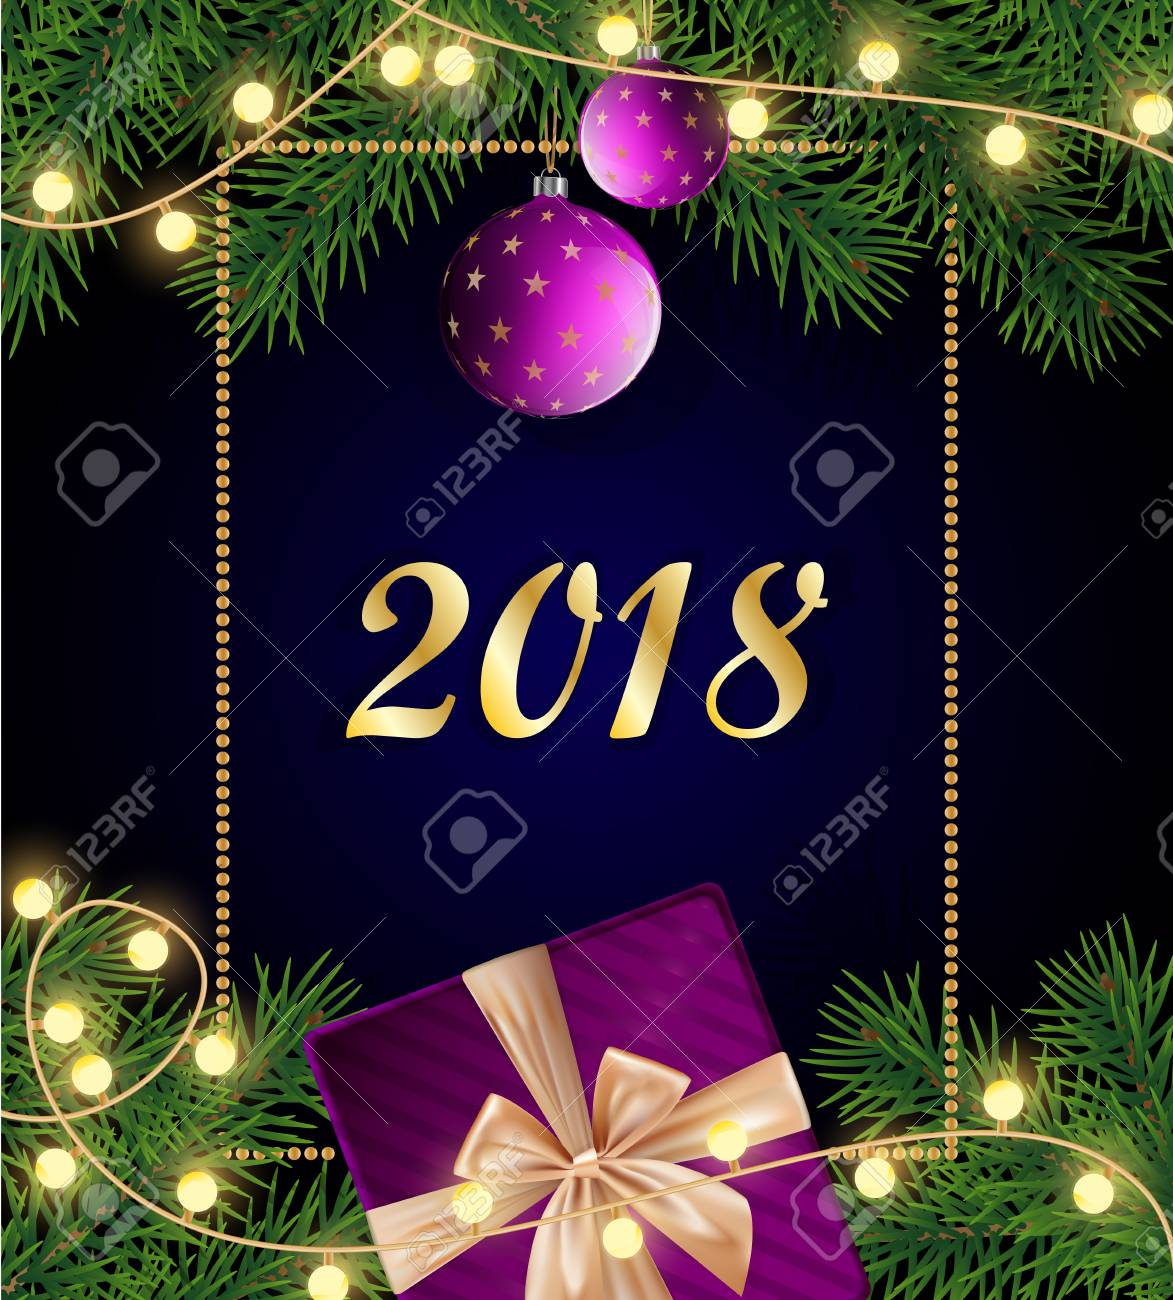 Merry Christmas Poster 2018.Merry Christmas And Happy 2018 New Year Background With Frame